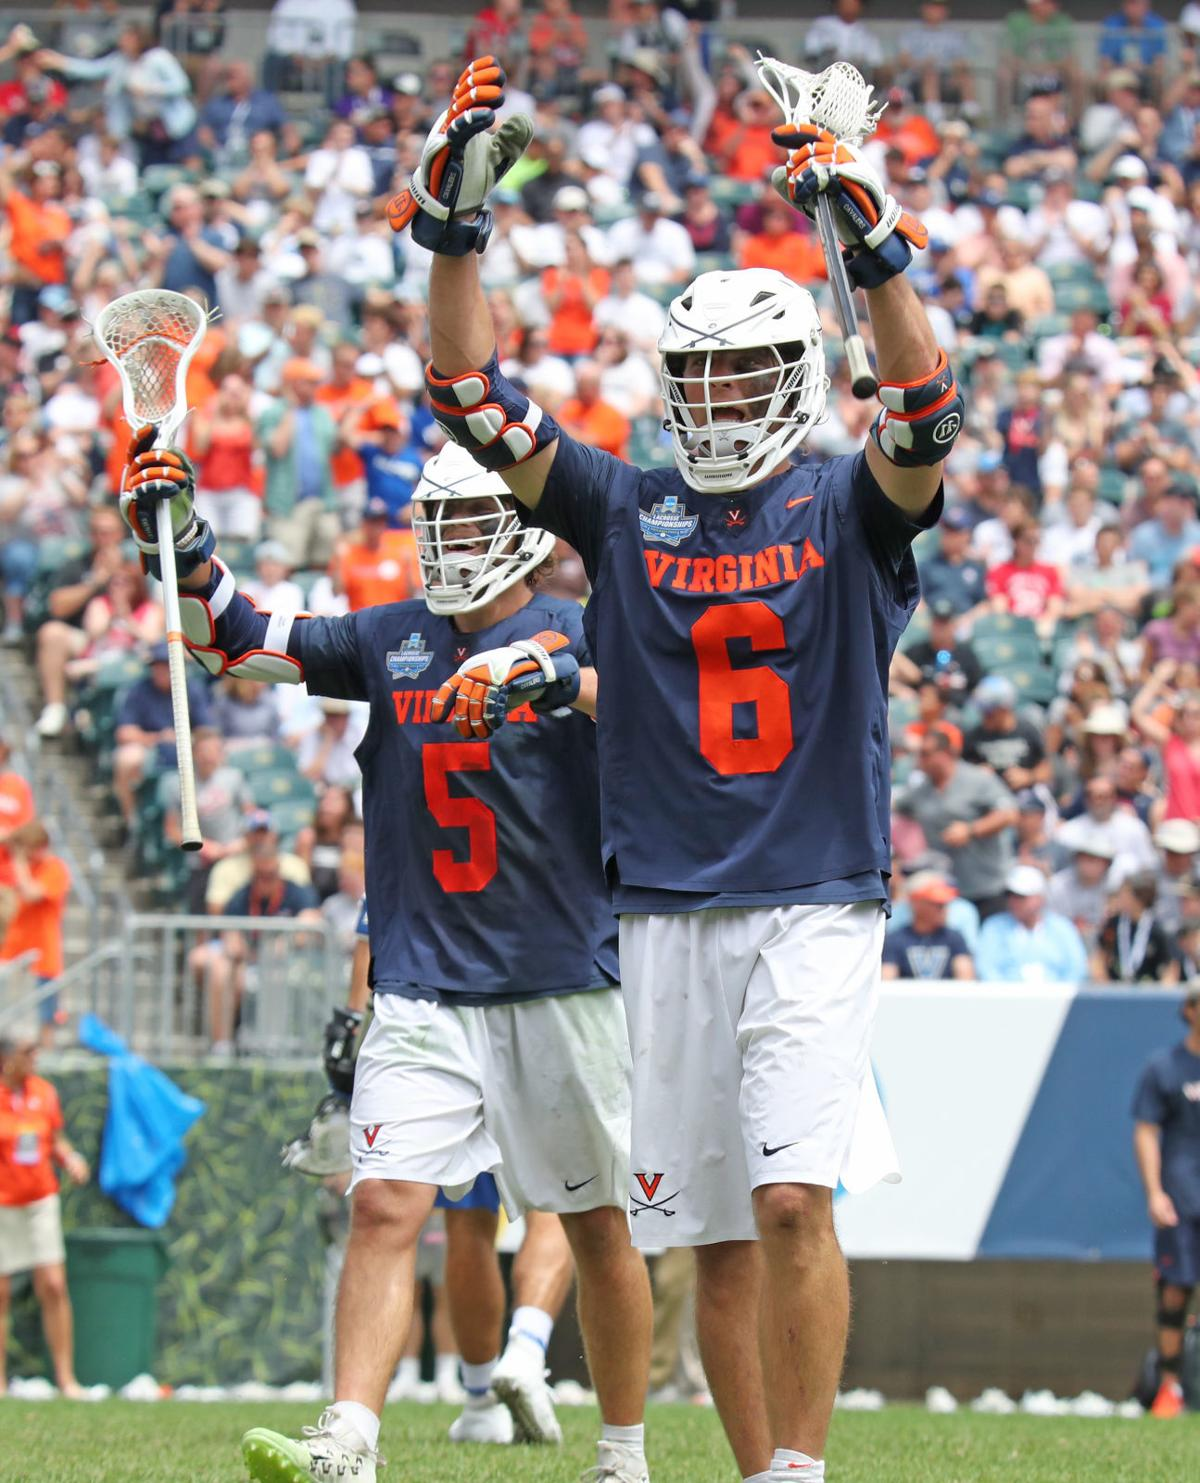 UVa men's lacrosse: Cavaliers look for 6th national title ...